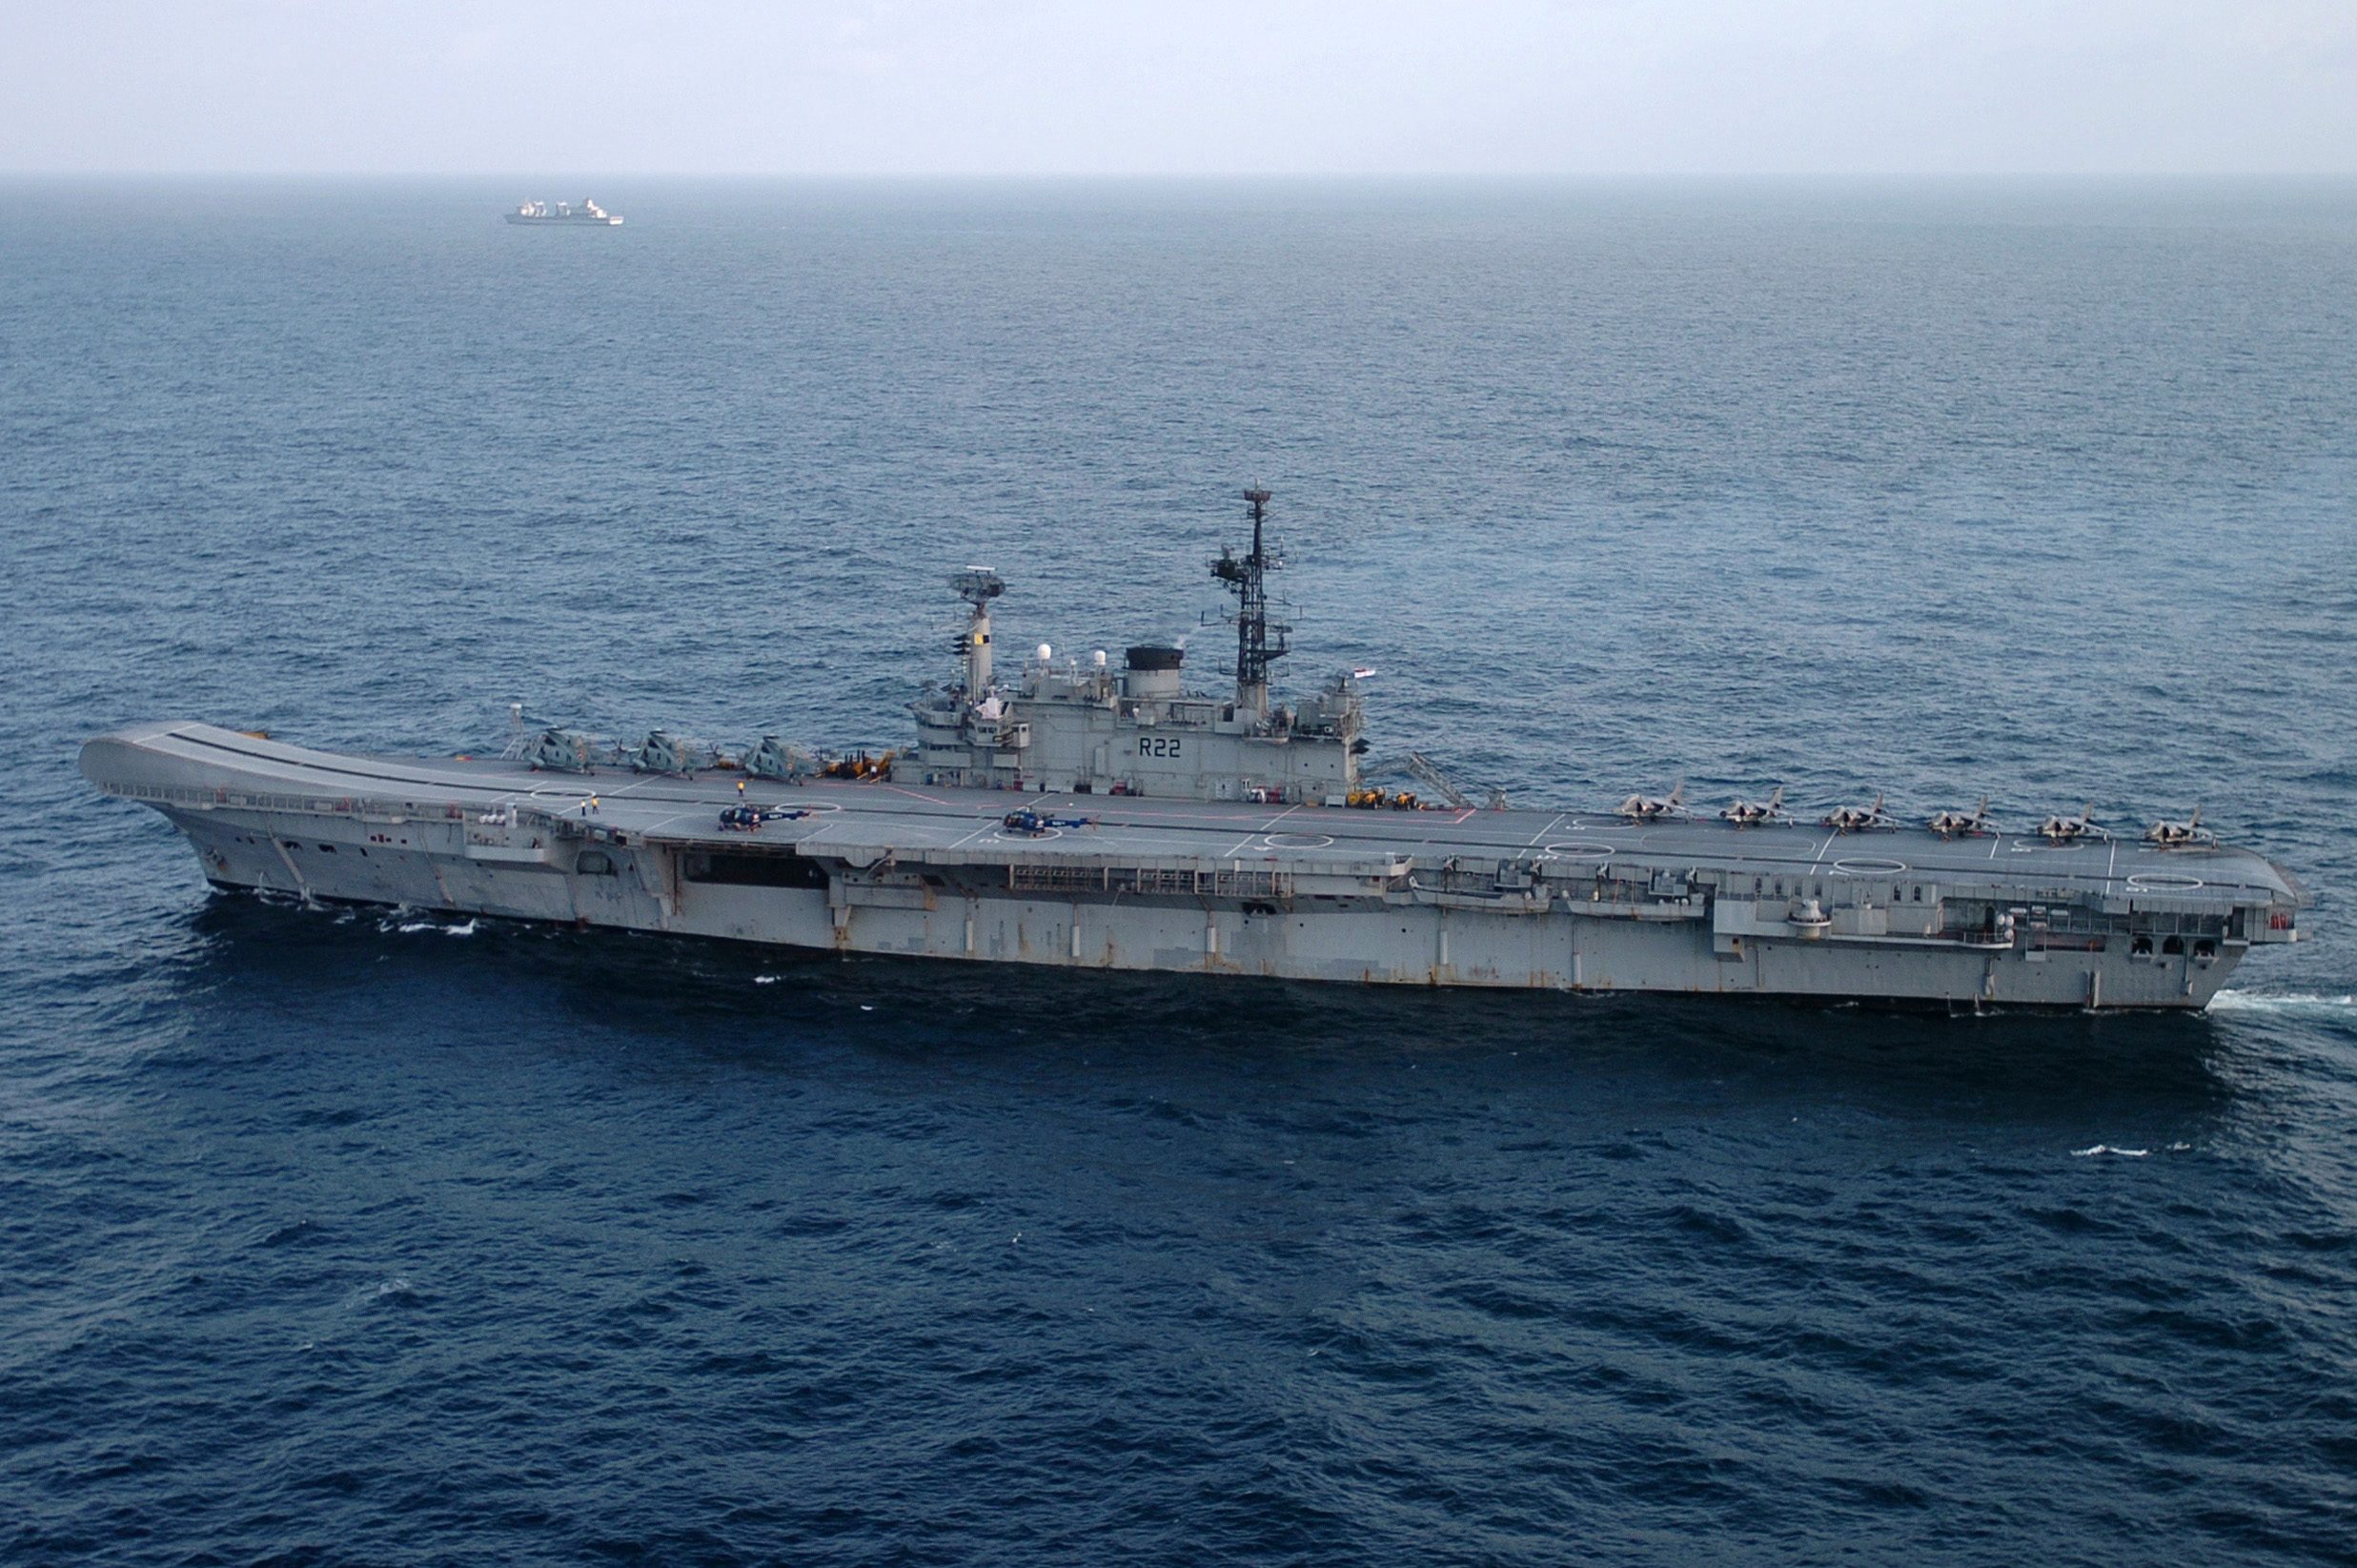 an overview of the historic invention of aircraft carrier in the united states Her history commissioned  of naval aviationthe ship was the oldest working  carrier in the united states navy when decommissioned in 1991  her planes  destroyed 372 enemy aircraft in the air, and 475 more on the ground she sank or .